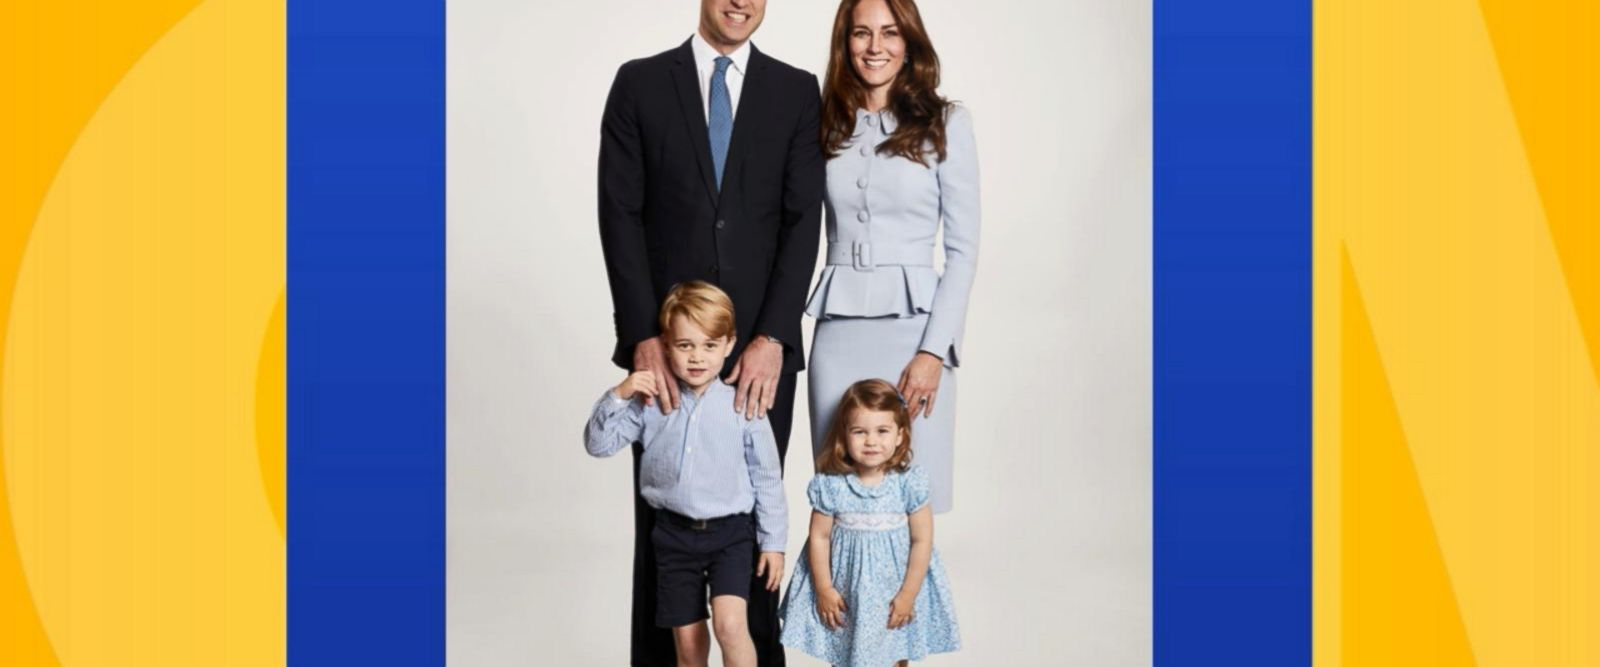 VIDEO: Royals reveal adorable new Christmas card